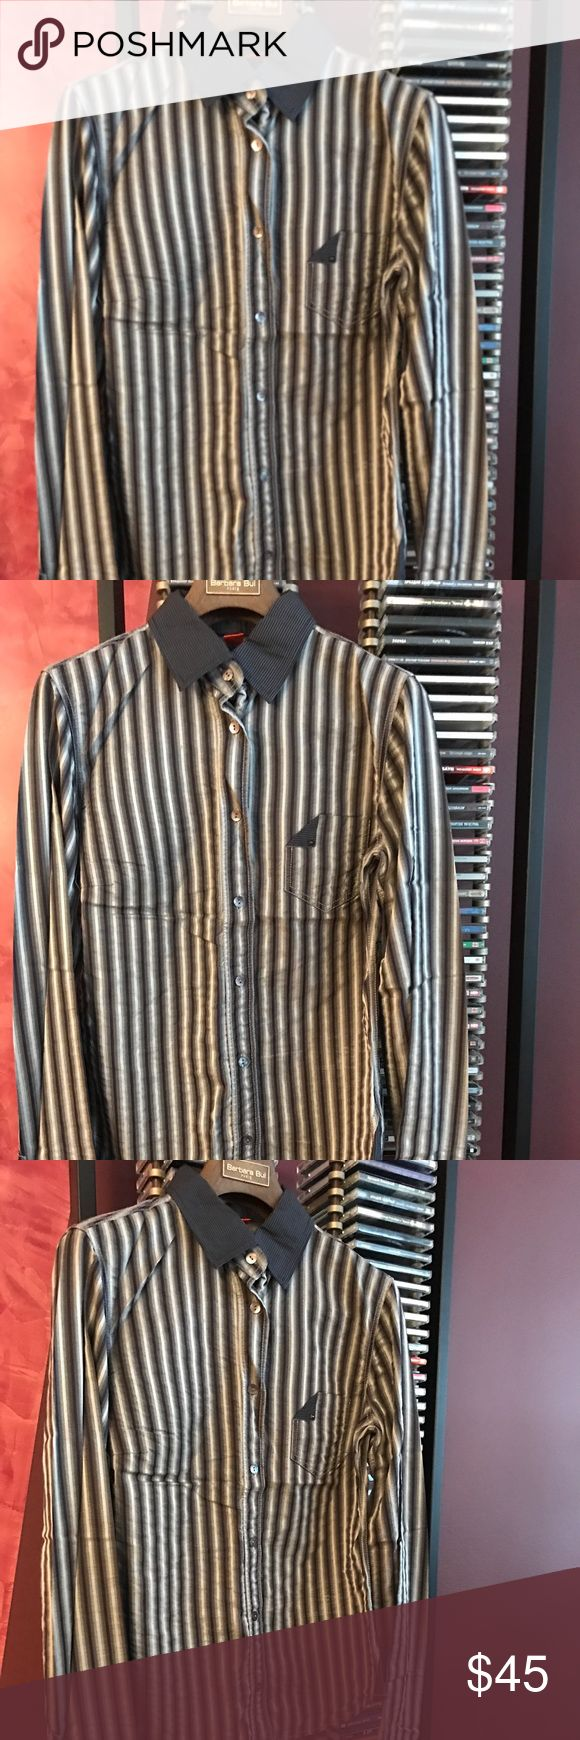 """Hugo Boss Fitted Button Down Long Sleeve Shirt Boss by Hugo Boss Stripe Shirt Size S Perfect condition with absolutely no damages, but may have been worn on one or two times. Fitted Button Down Long Sleeve Shirt Fabric Content: 69% Cotton 31% Viscose USA Size Small Shoulder to Shoulder 15""""  Armpit to Armpit 17""""  Sleeve 25"""" Waist 16"""" Length 23"""" BOSS ORANGE Tops Button Down Shirts"""